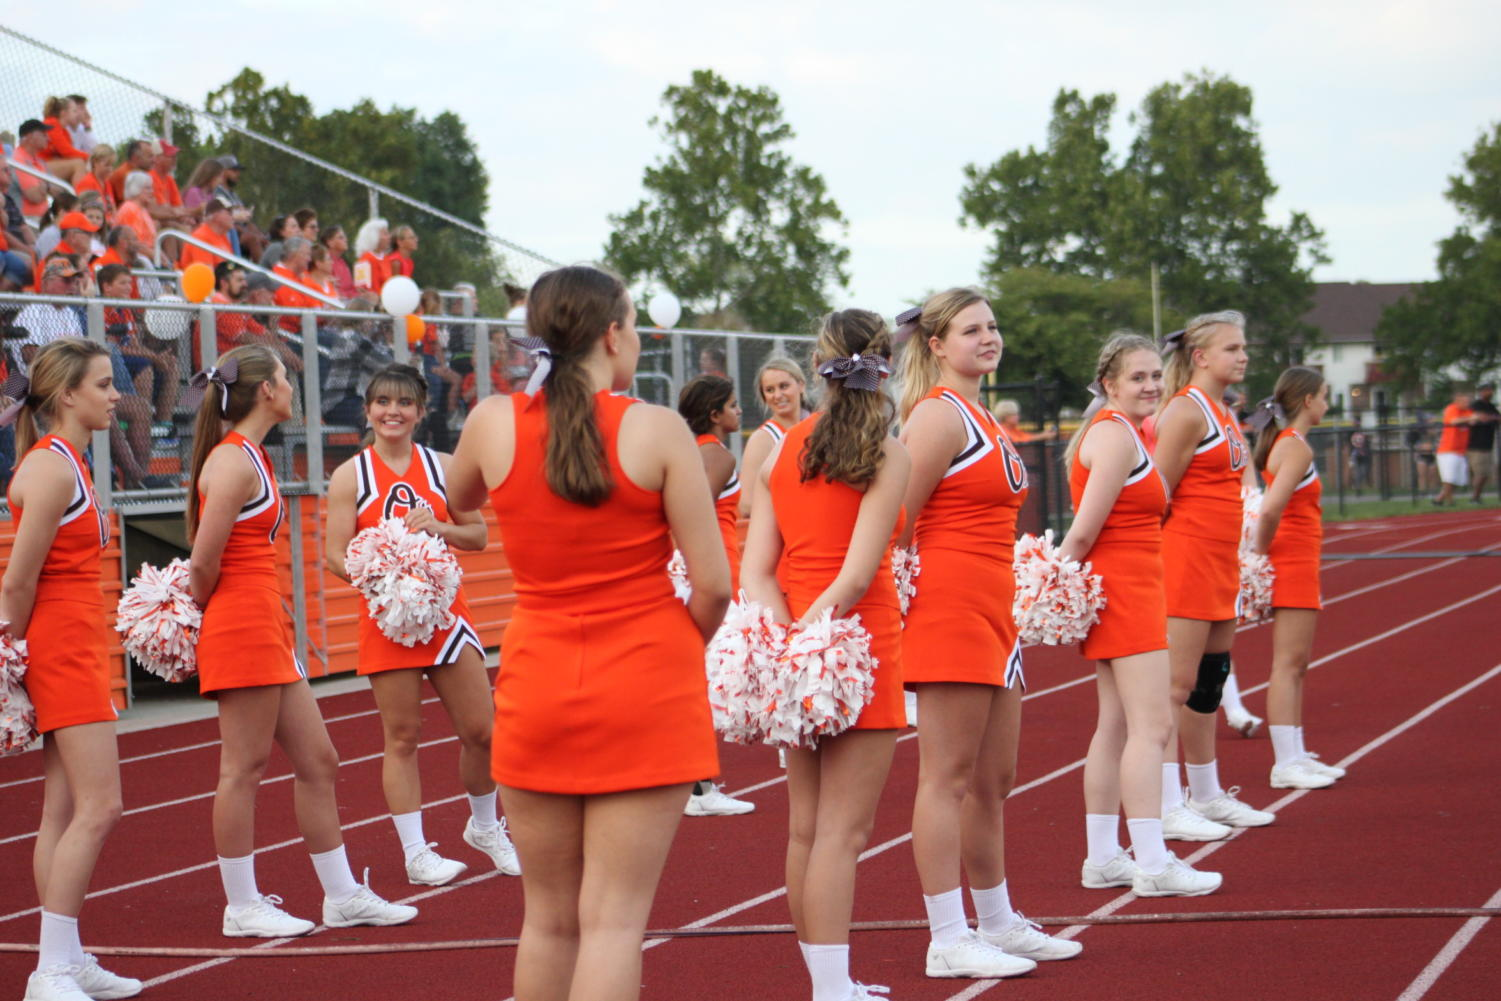 Cheerleaders+line+up+to+watch+the+game.